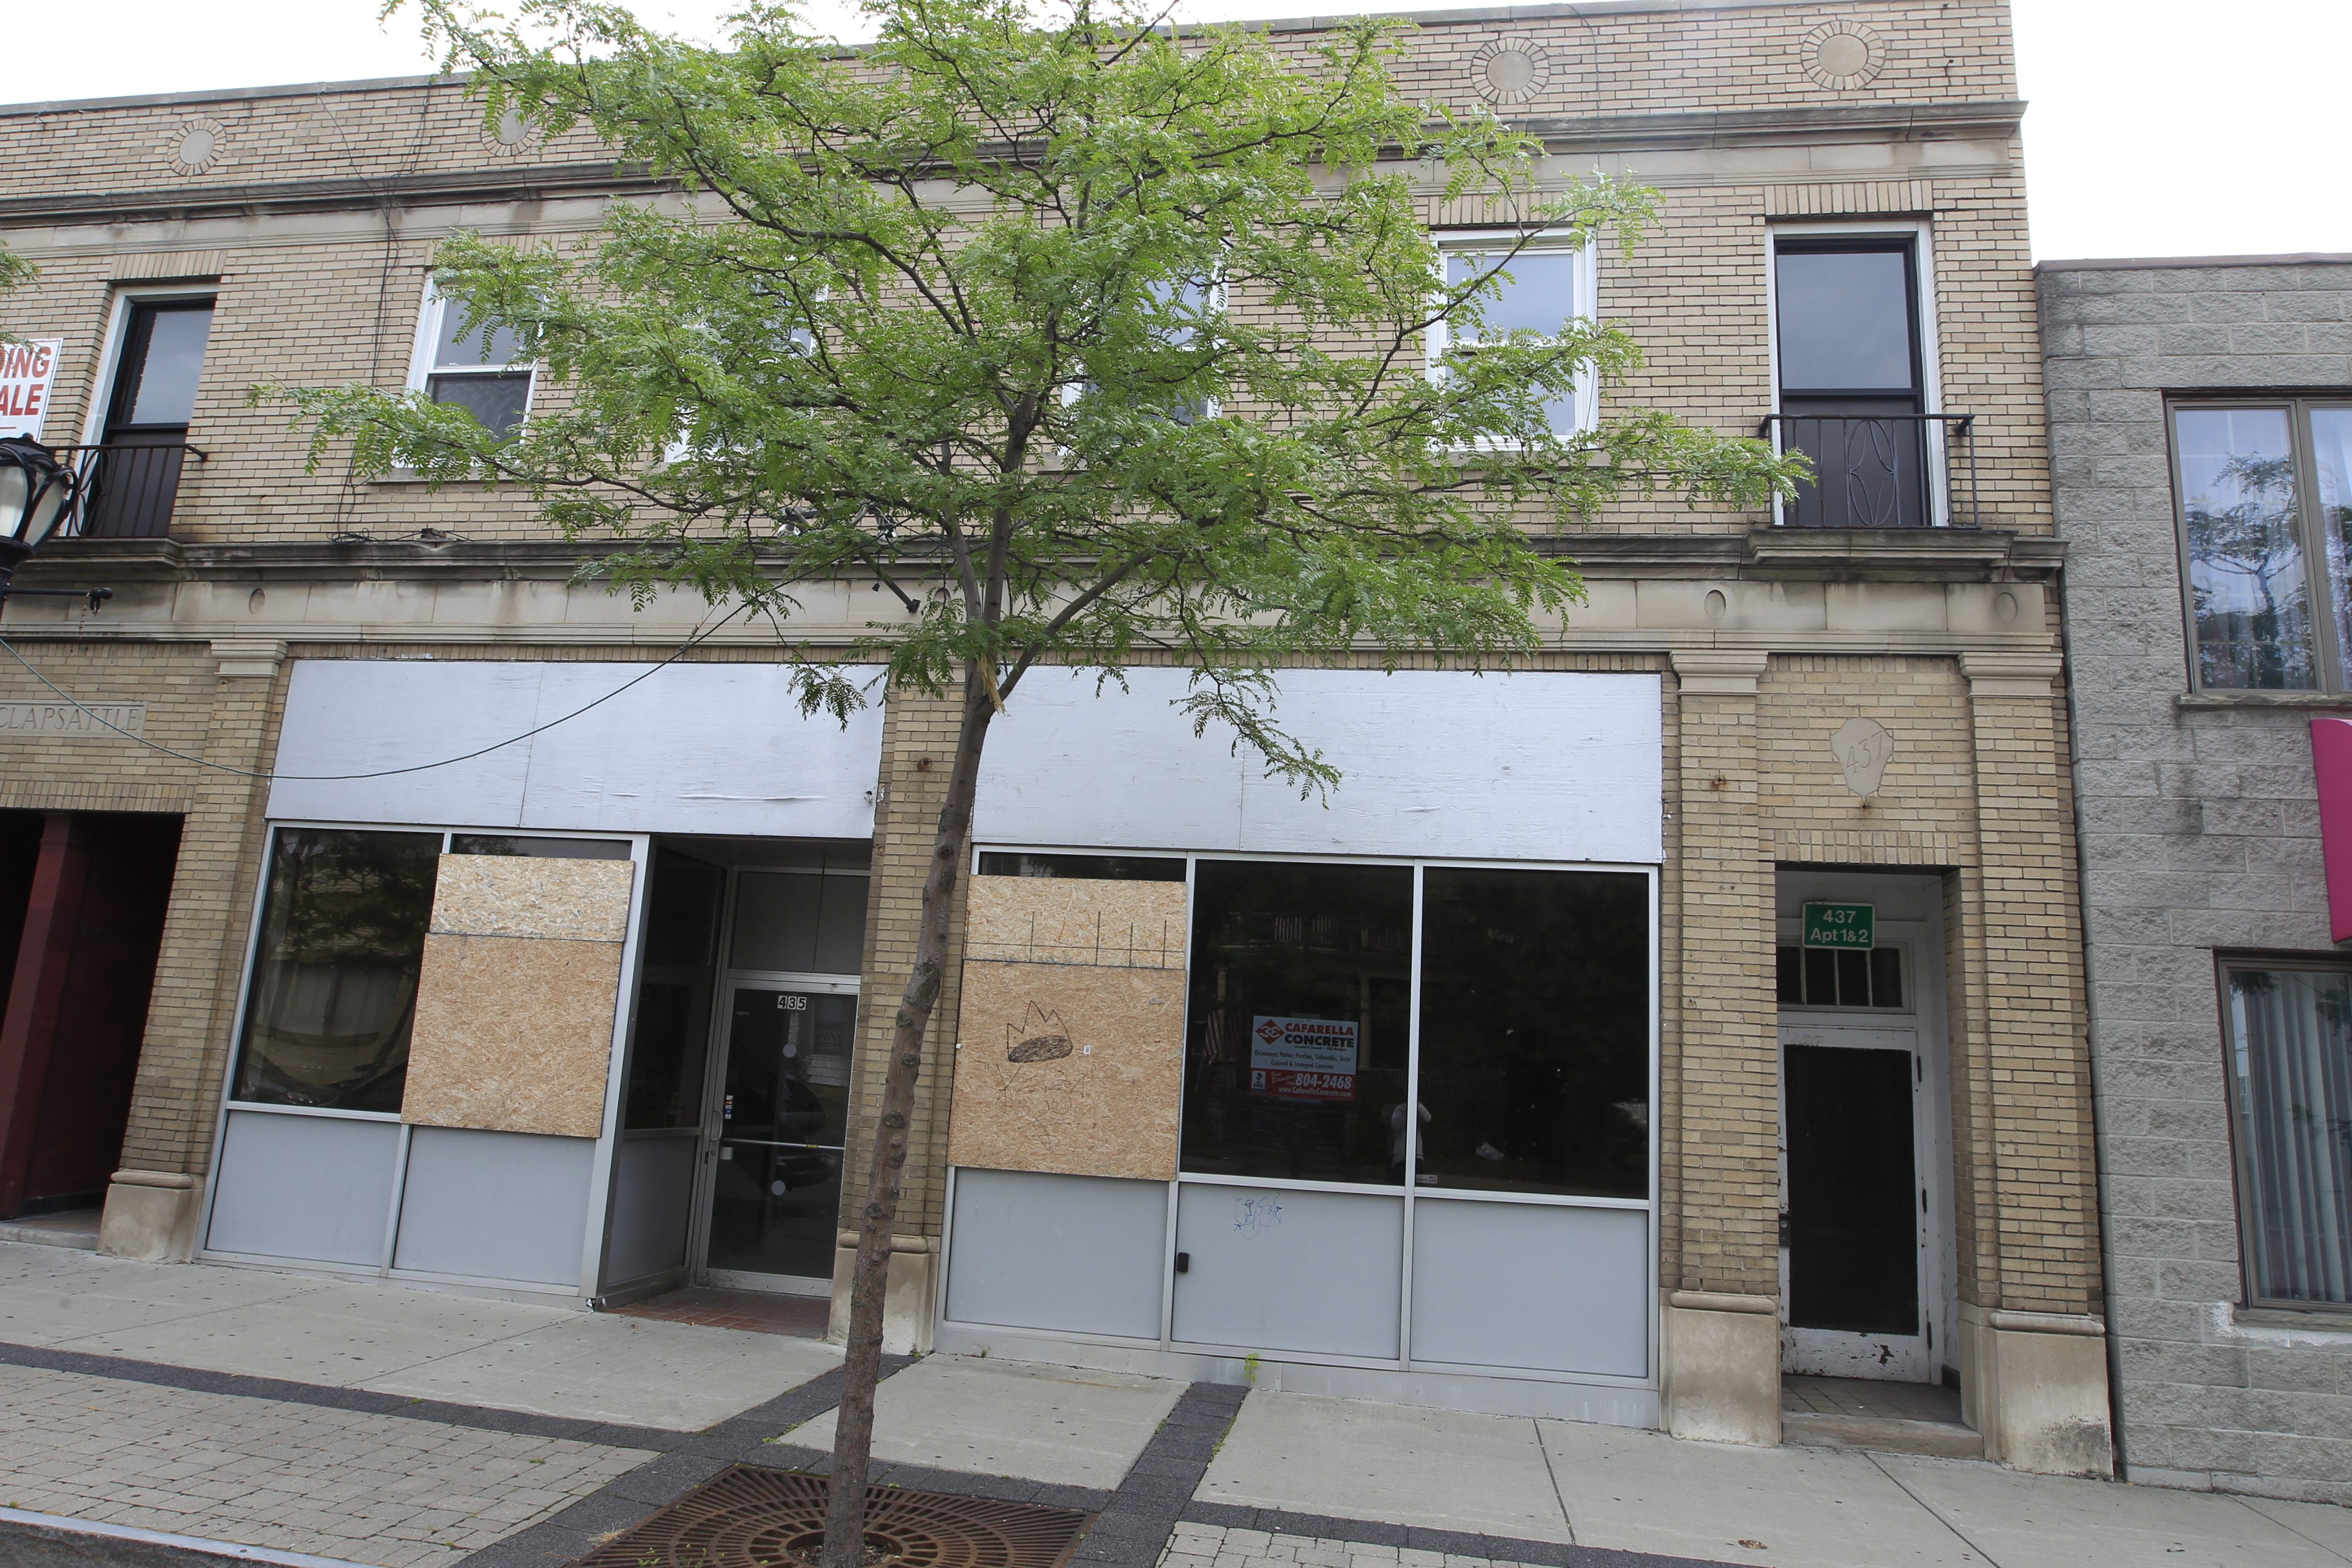 Cataract Development Corp. will renovate 435 and 437 Third St. to add eight market-rate apartments. The building also houses the Third Street Tap Room.